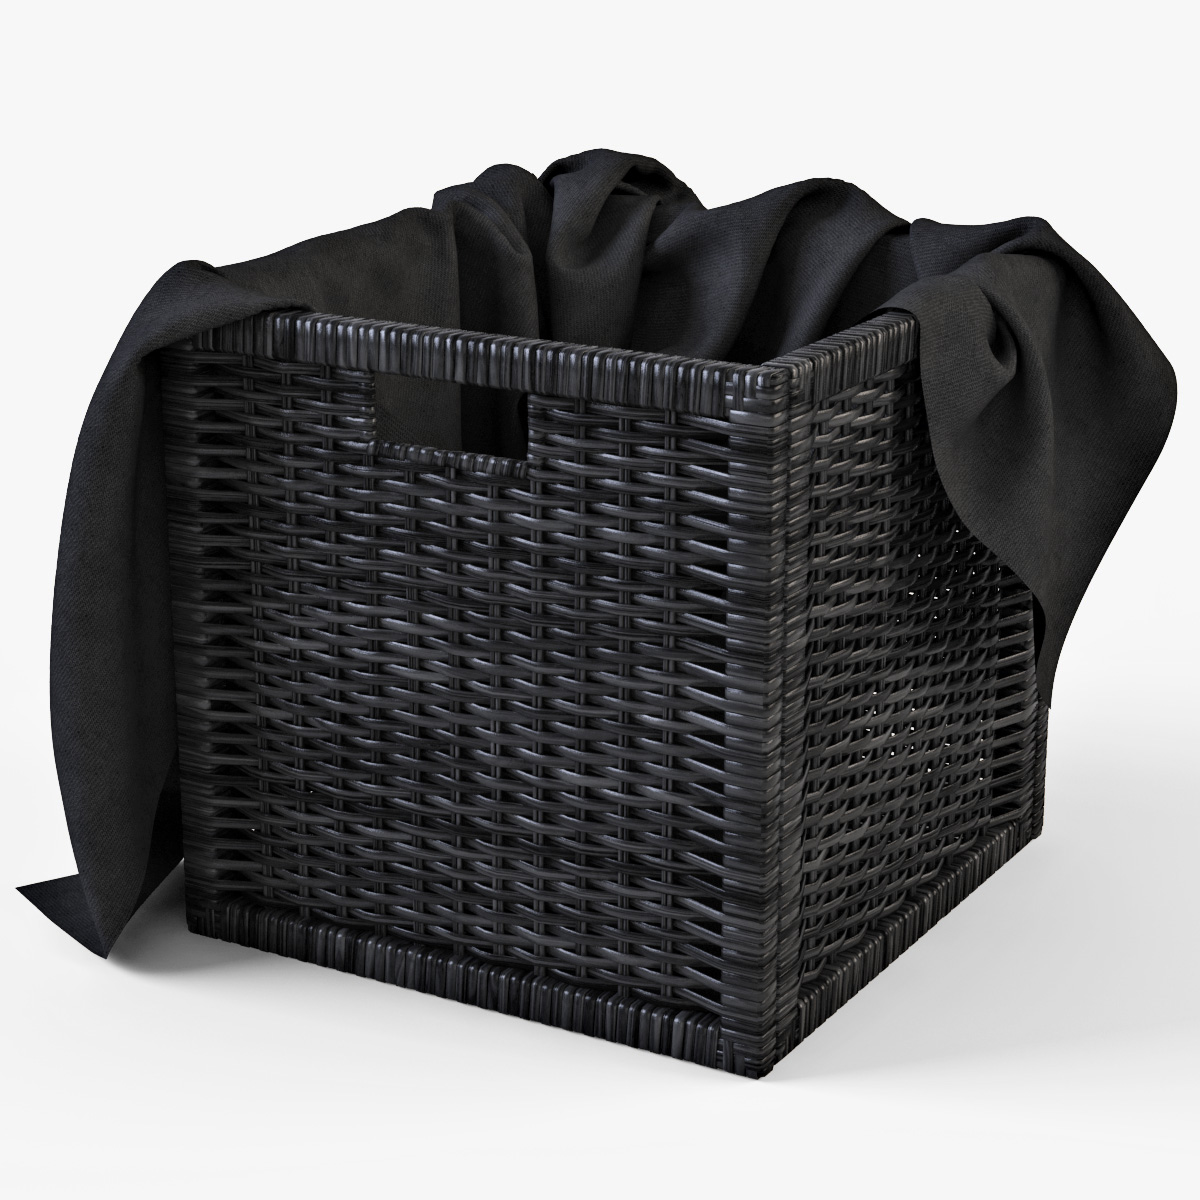 Black Wicker Hamper Rattan Basket Ikea Branas 3d Model